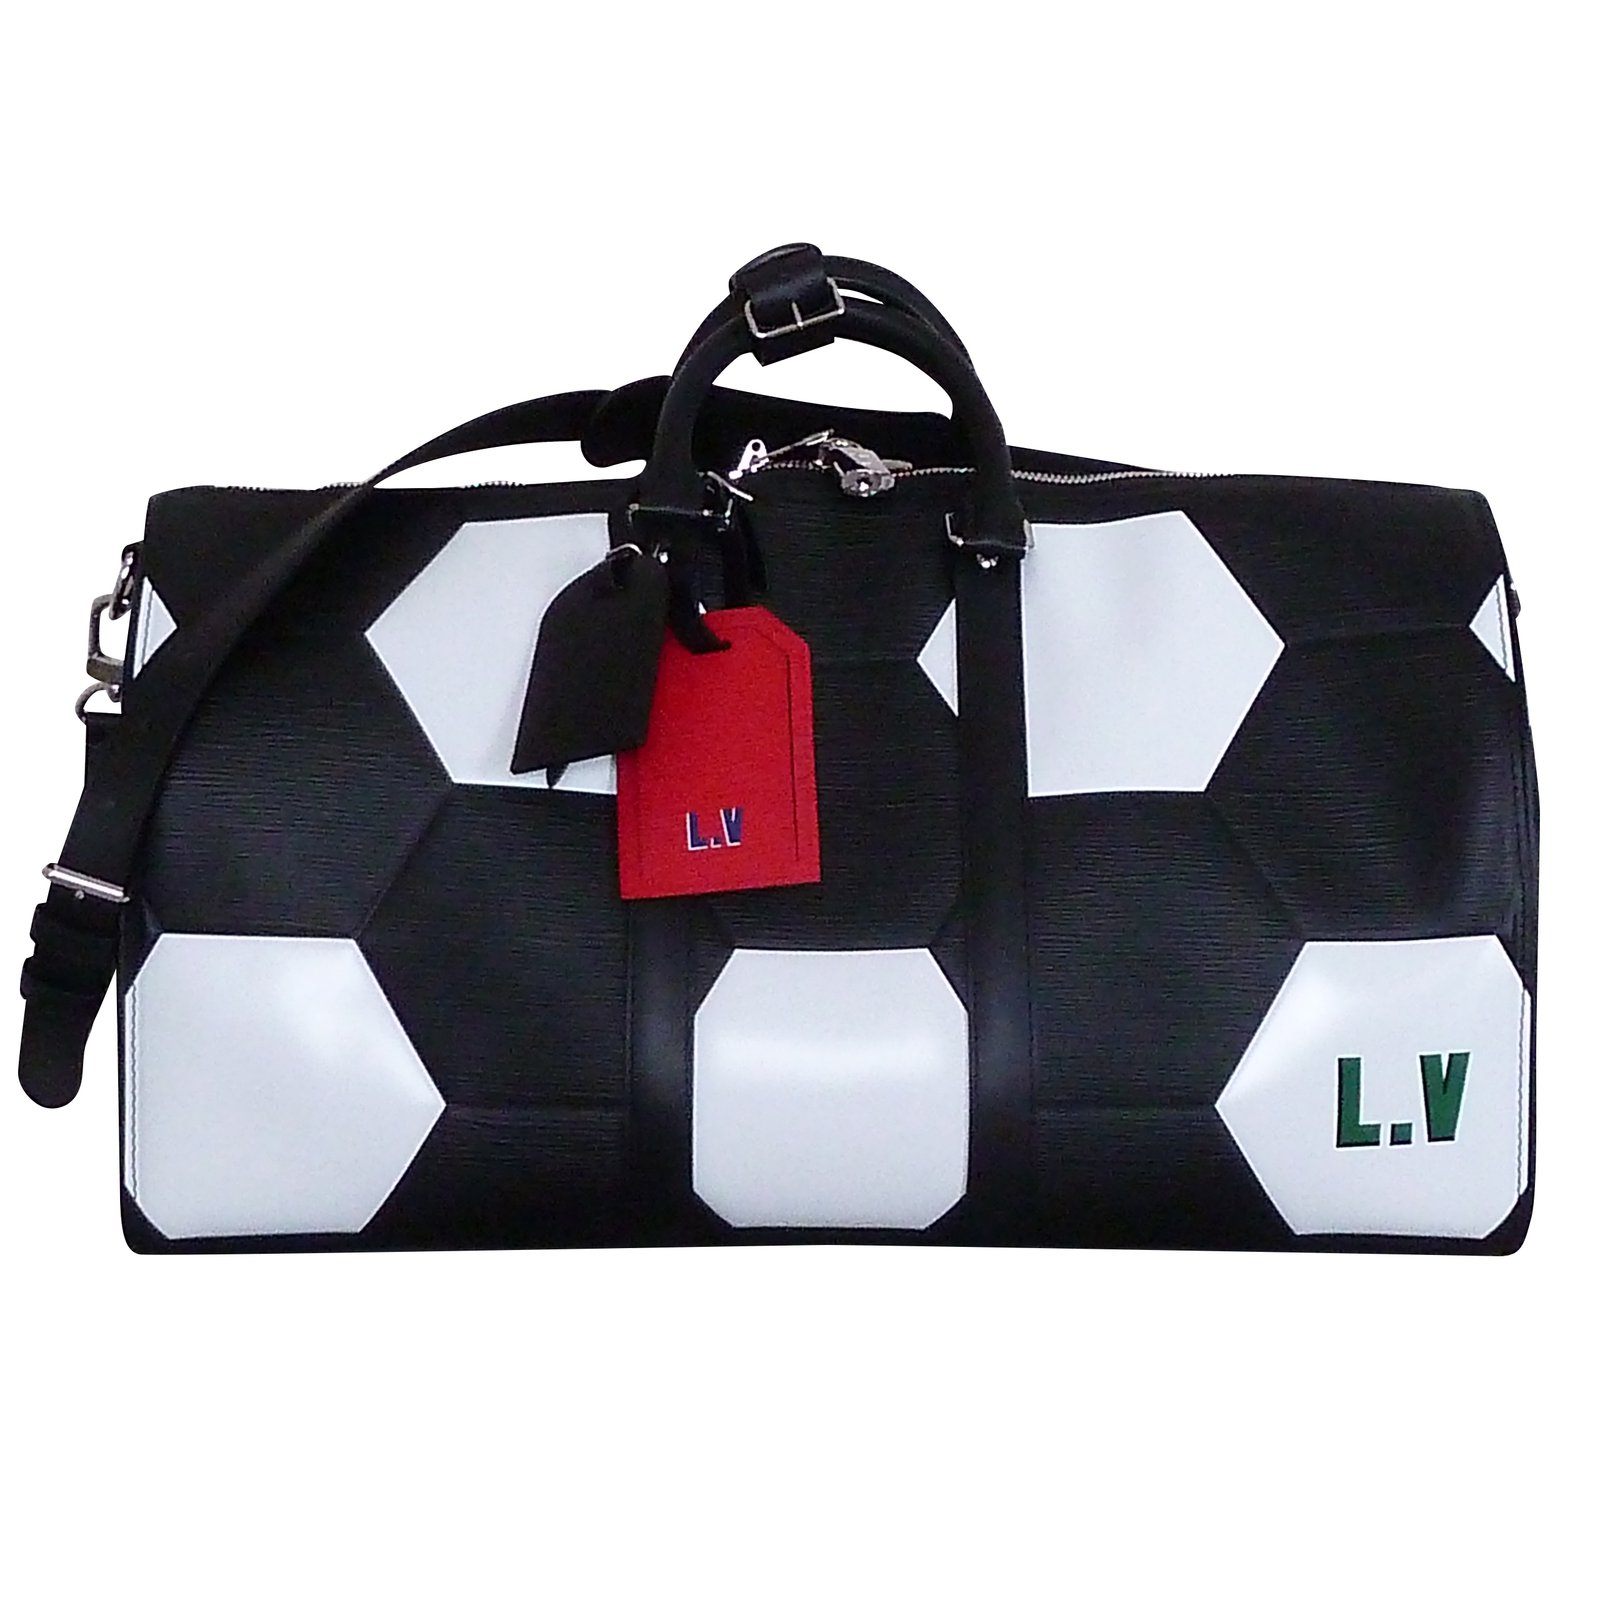 7c84b16cd7d Louis Vuitton Louis Vuitton Keepall 50 Epi World Cup 18 Limited edition  Bags Briefcases Leather Black